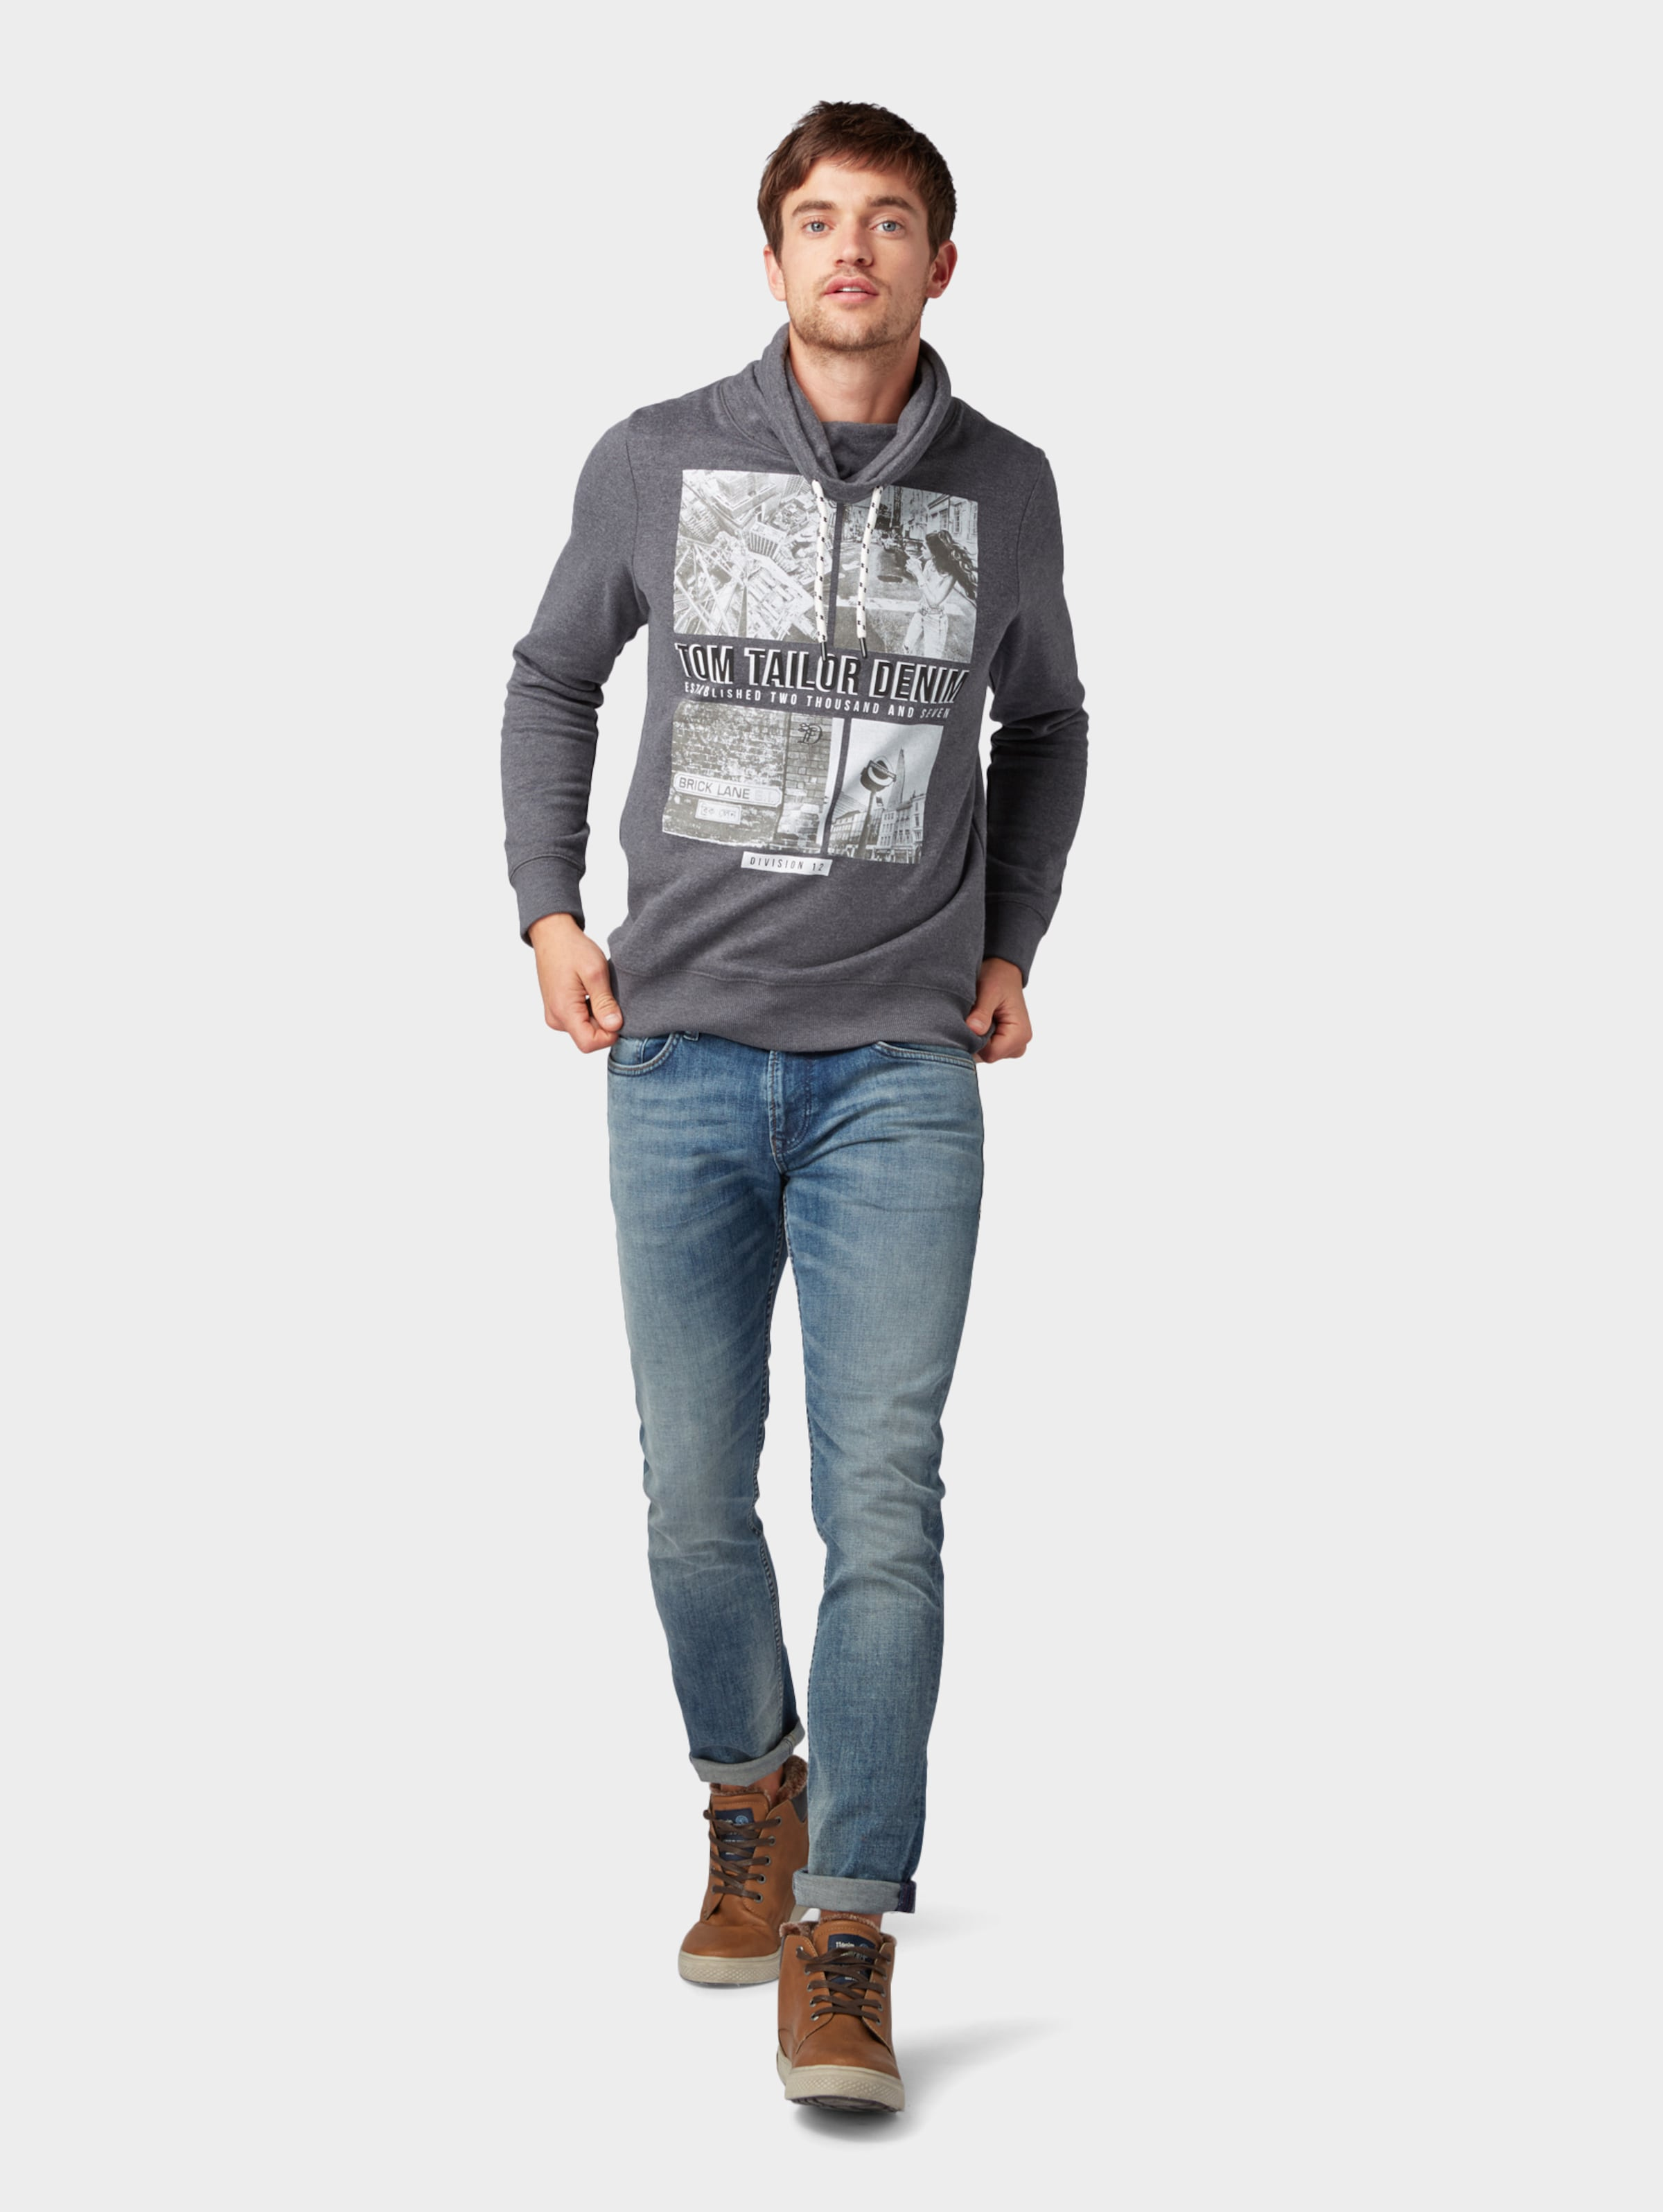 Sweatshirt In Denim GraphitSchwarz Tailor Tom Weiß UqpGMzVS